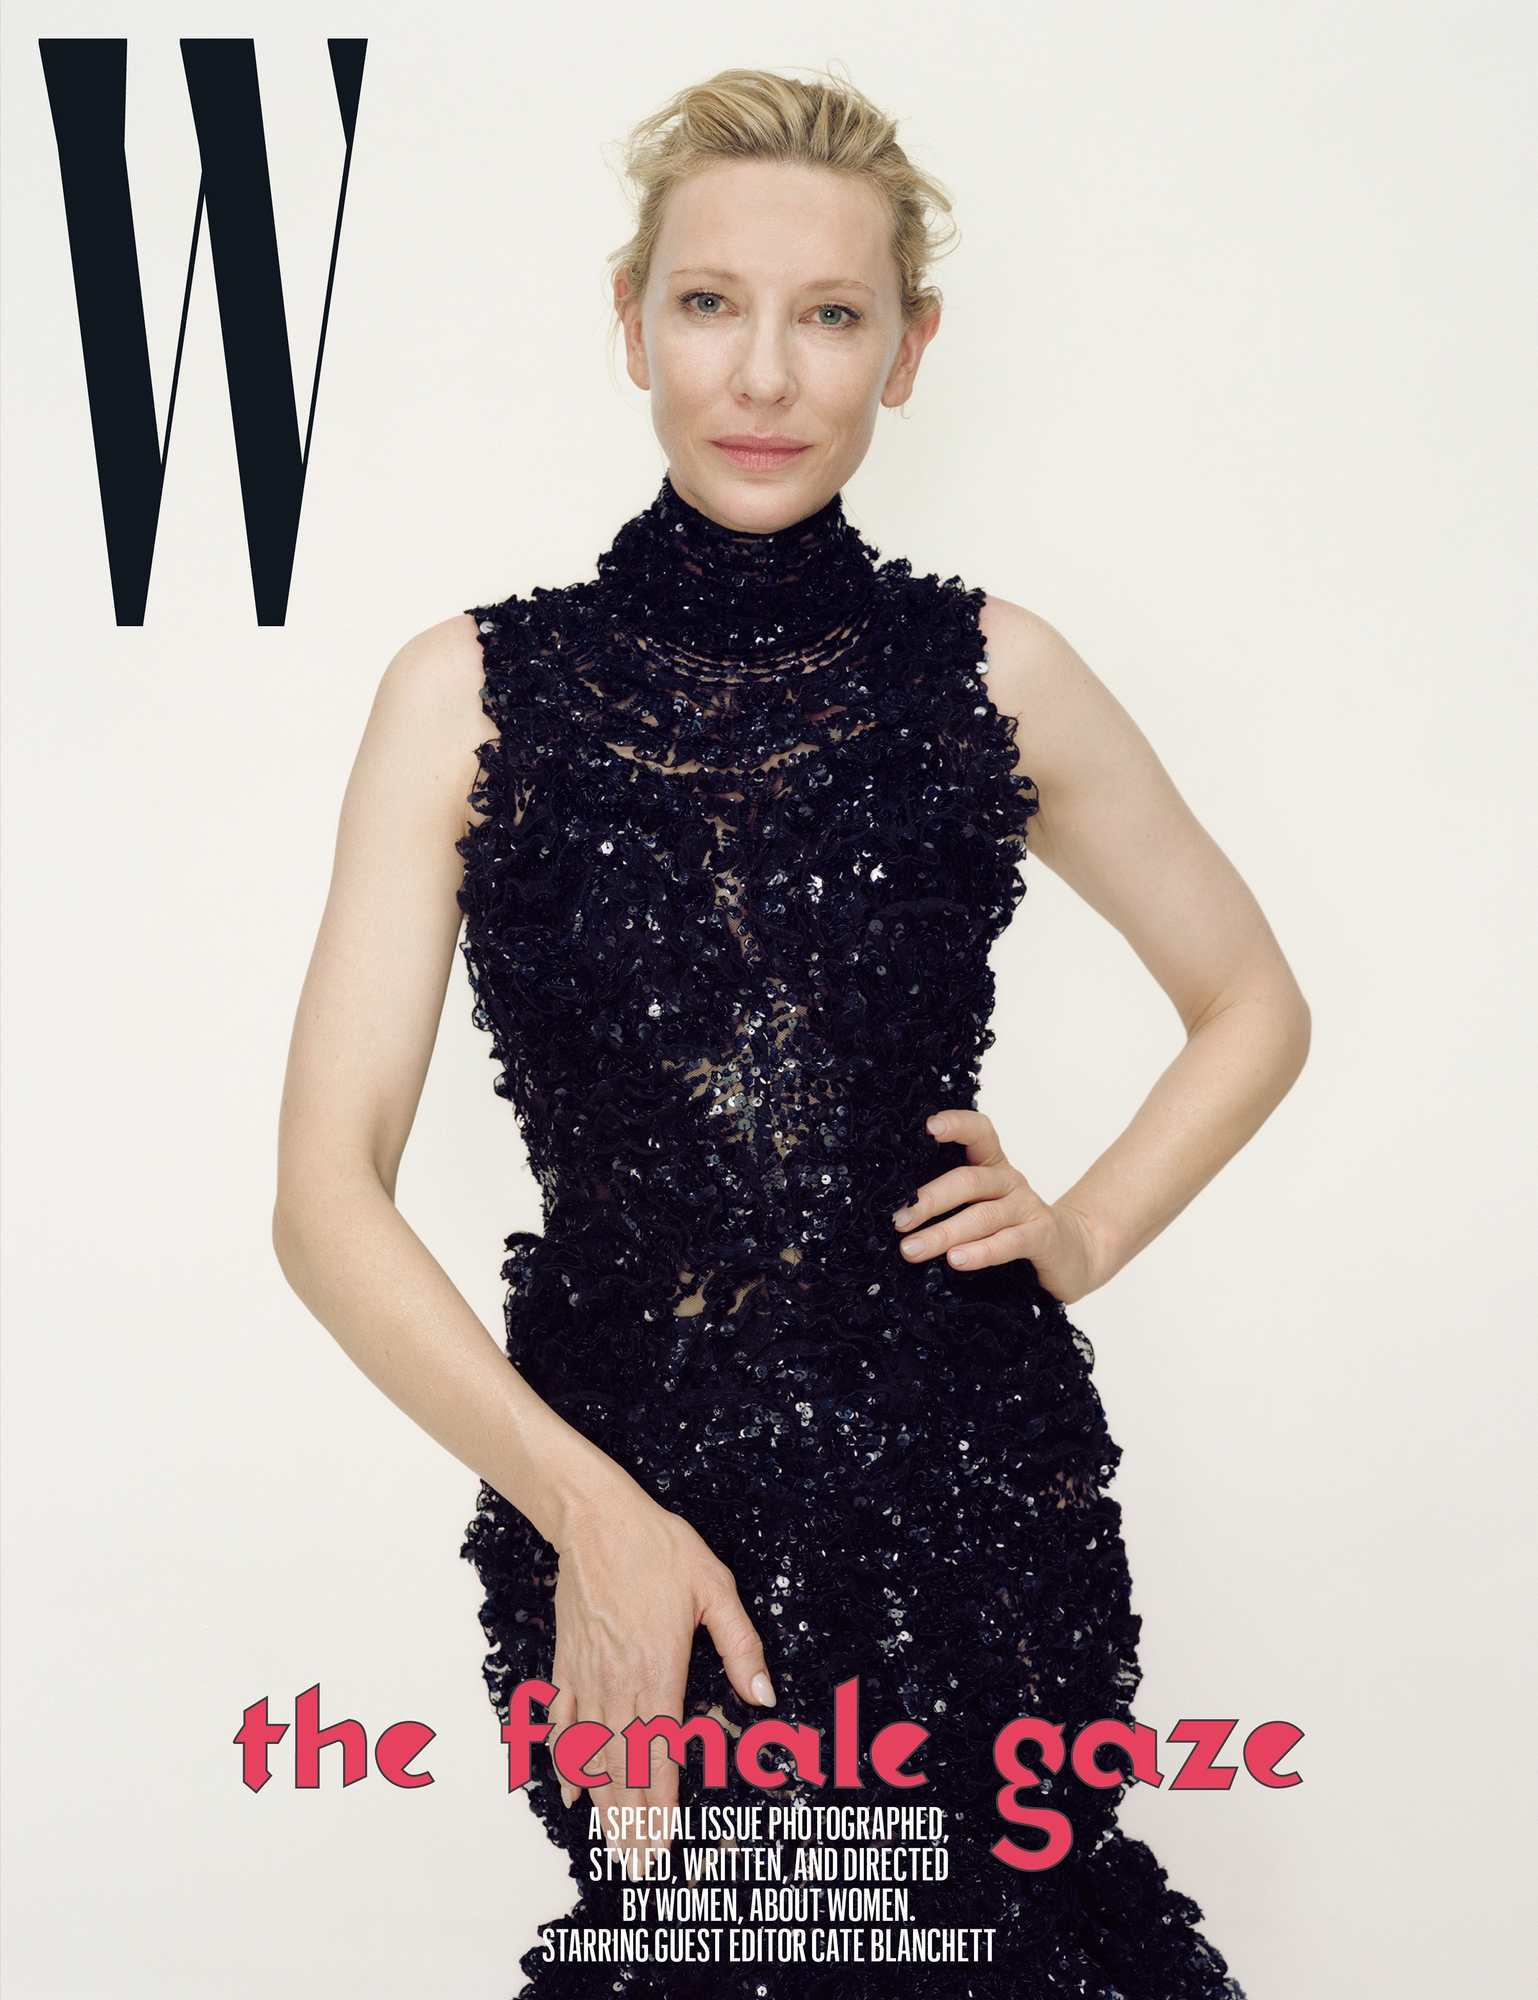 Cate-Blanchett-All-Female-Issue-of-W-Magazine-September069a56965971074.jpg